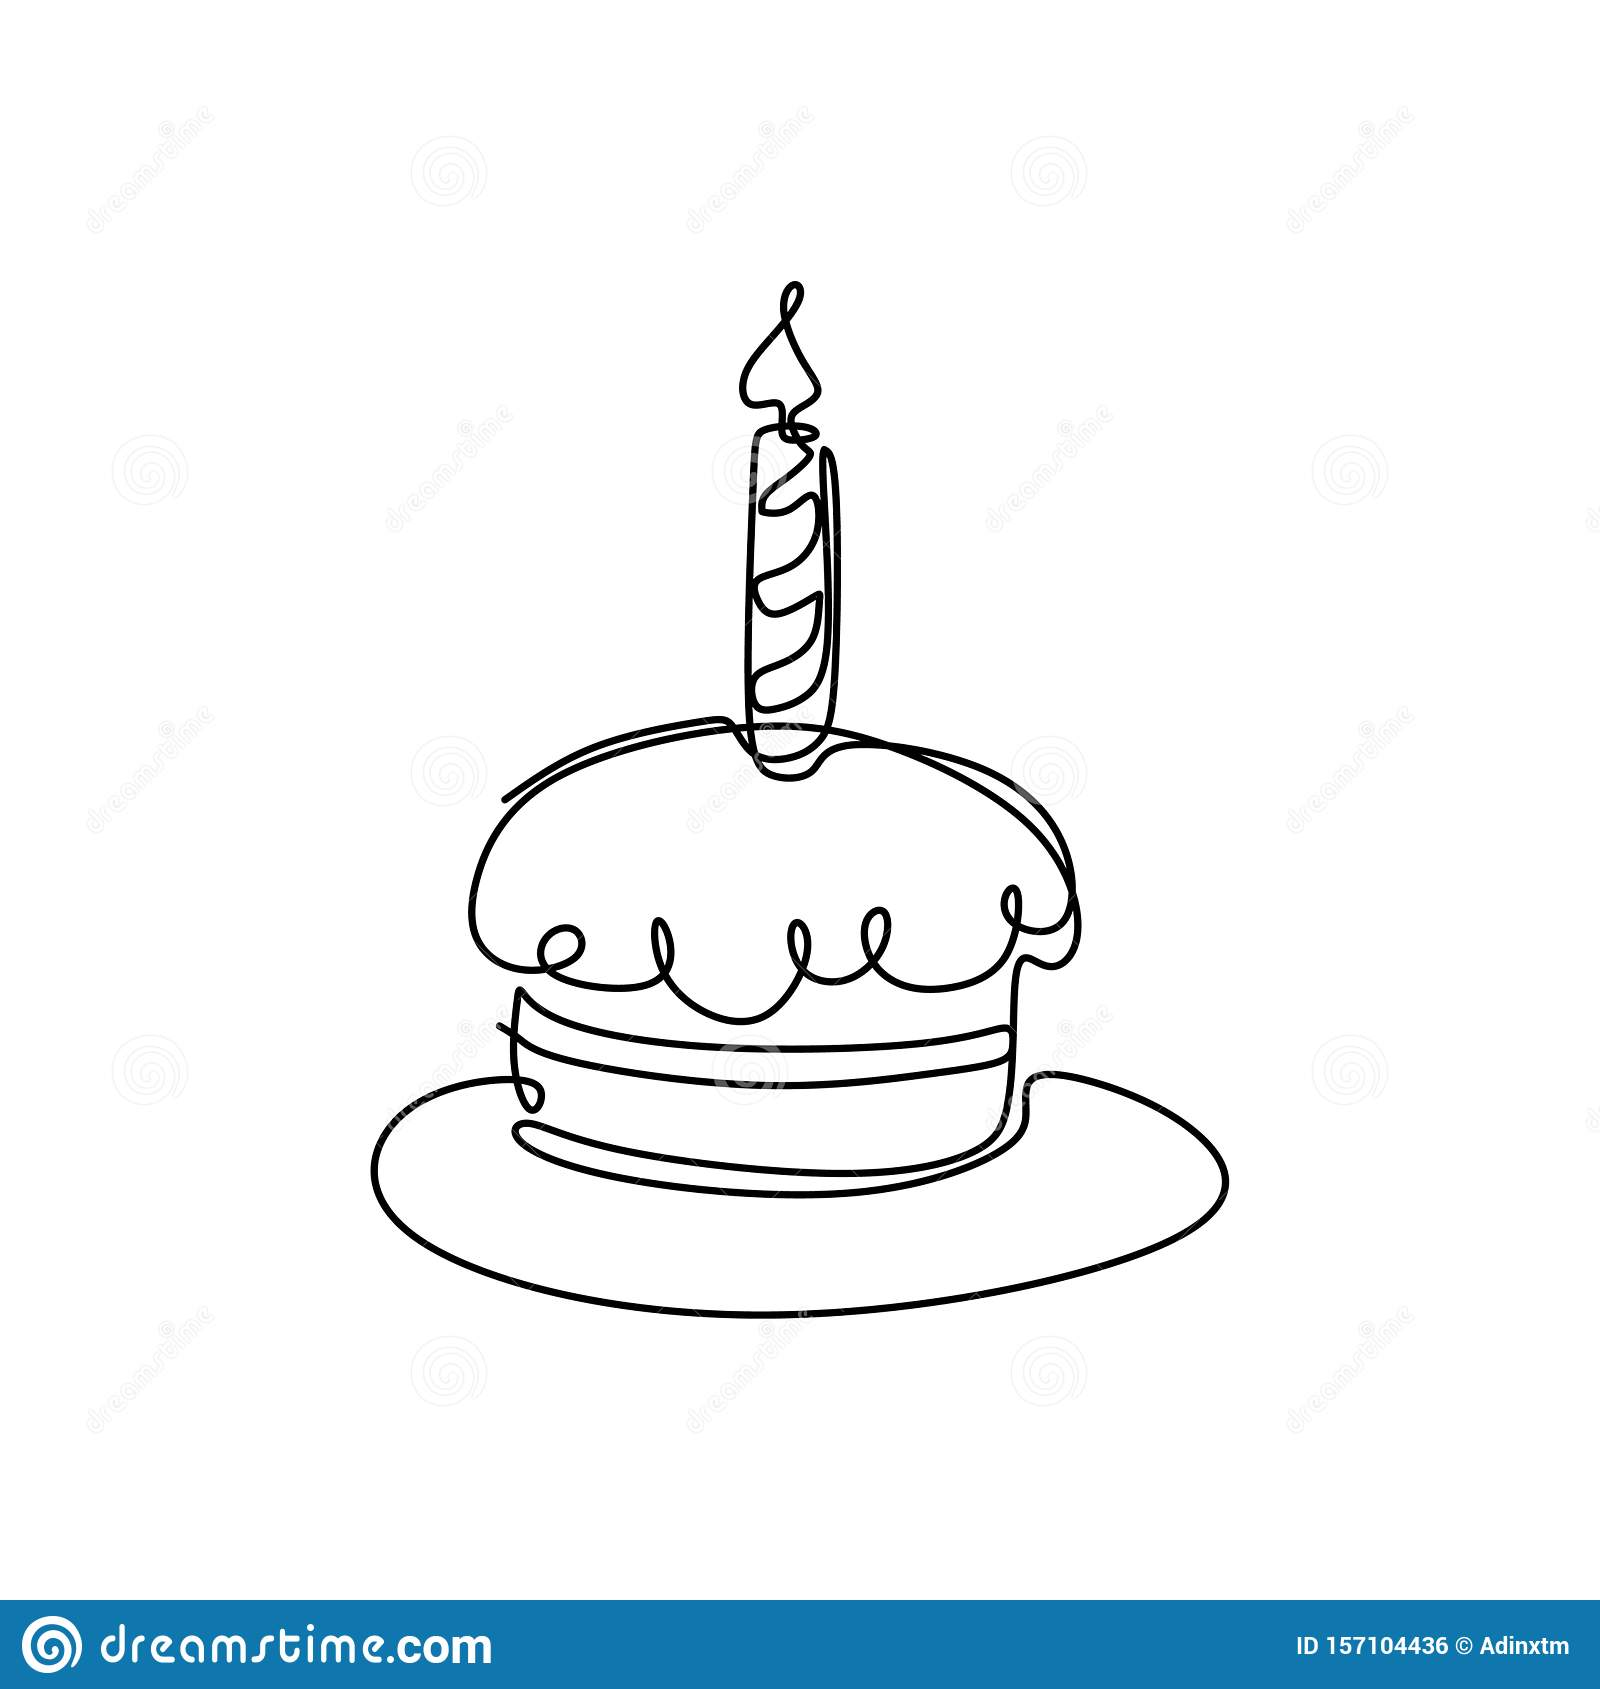 Incredible Continuous Line Drawing Birthday Cake With Candle Symbol Of Funny Birthday Cards Online Alyptdamsfinfo